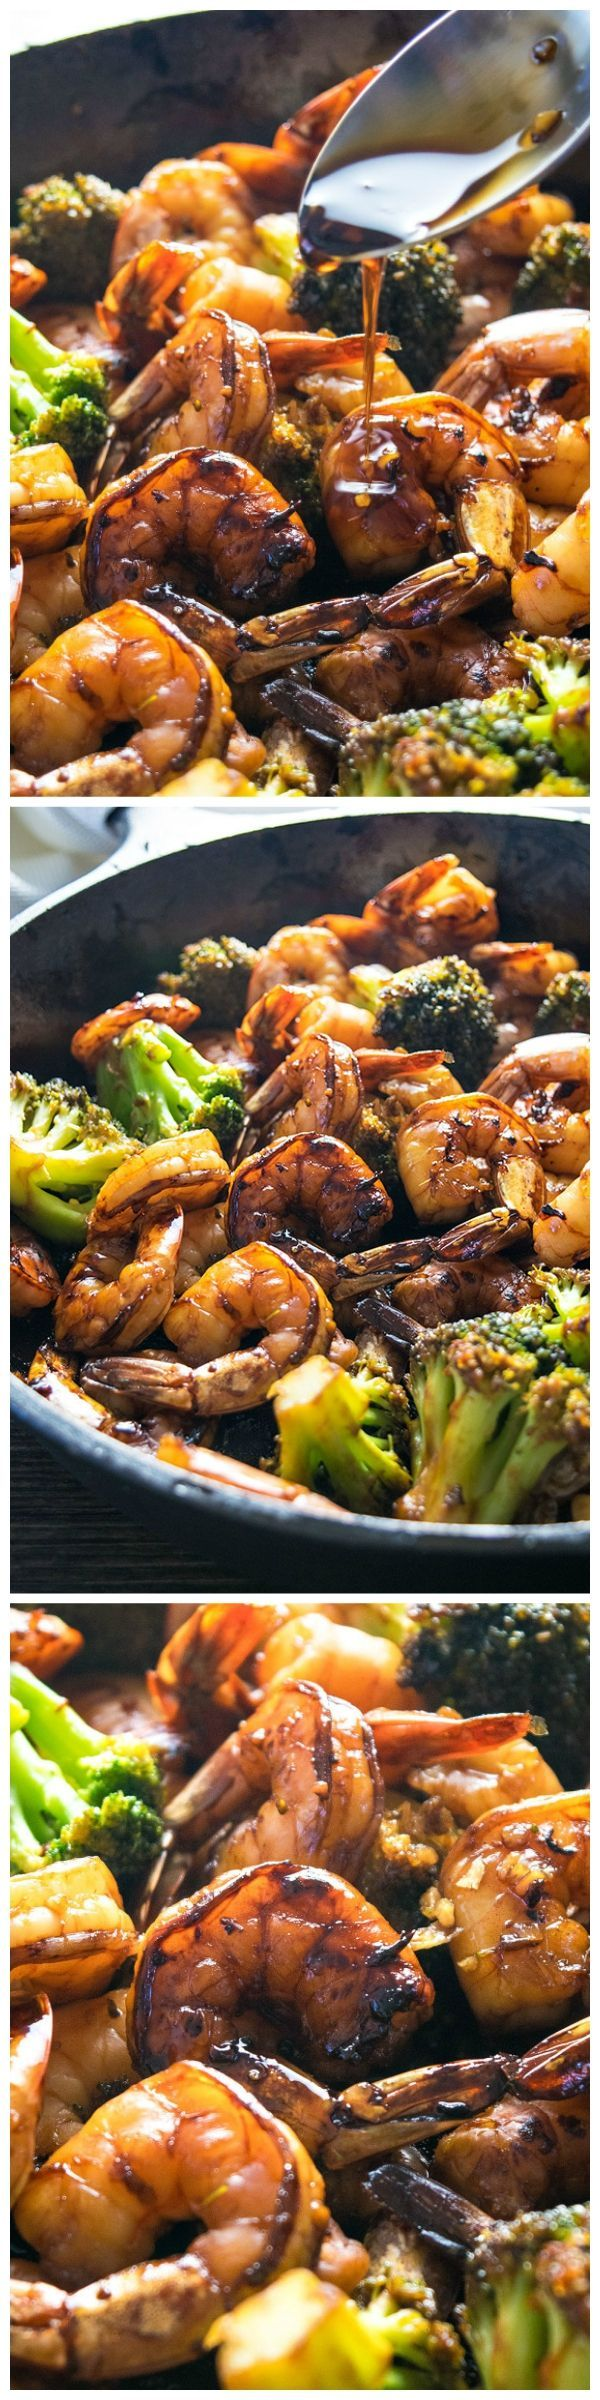 Browned honey garlic shrimp with tender broccoli | CookJino